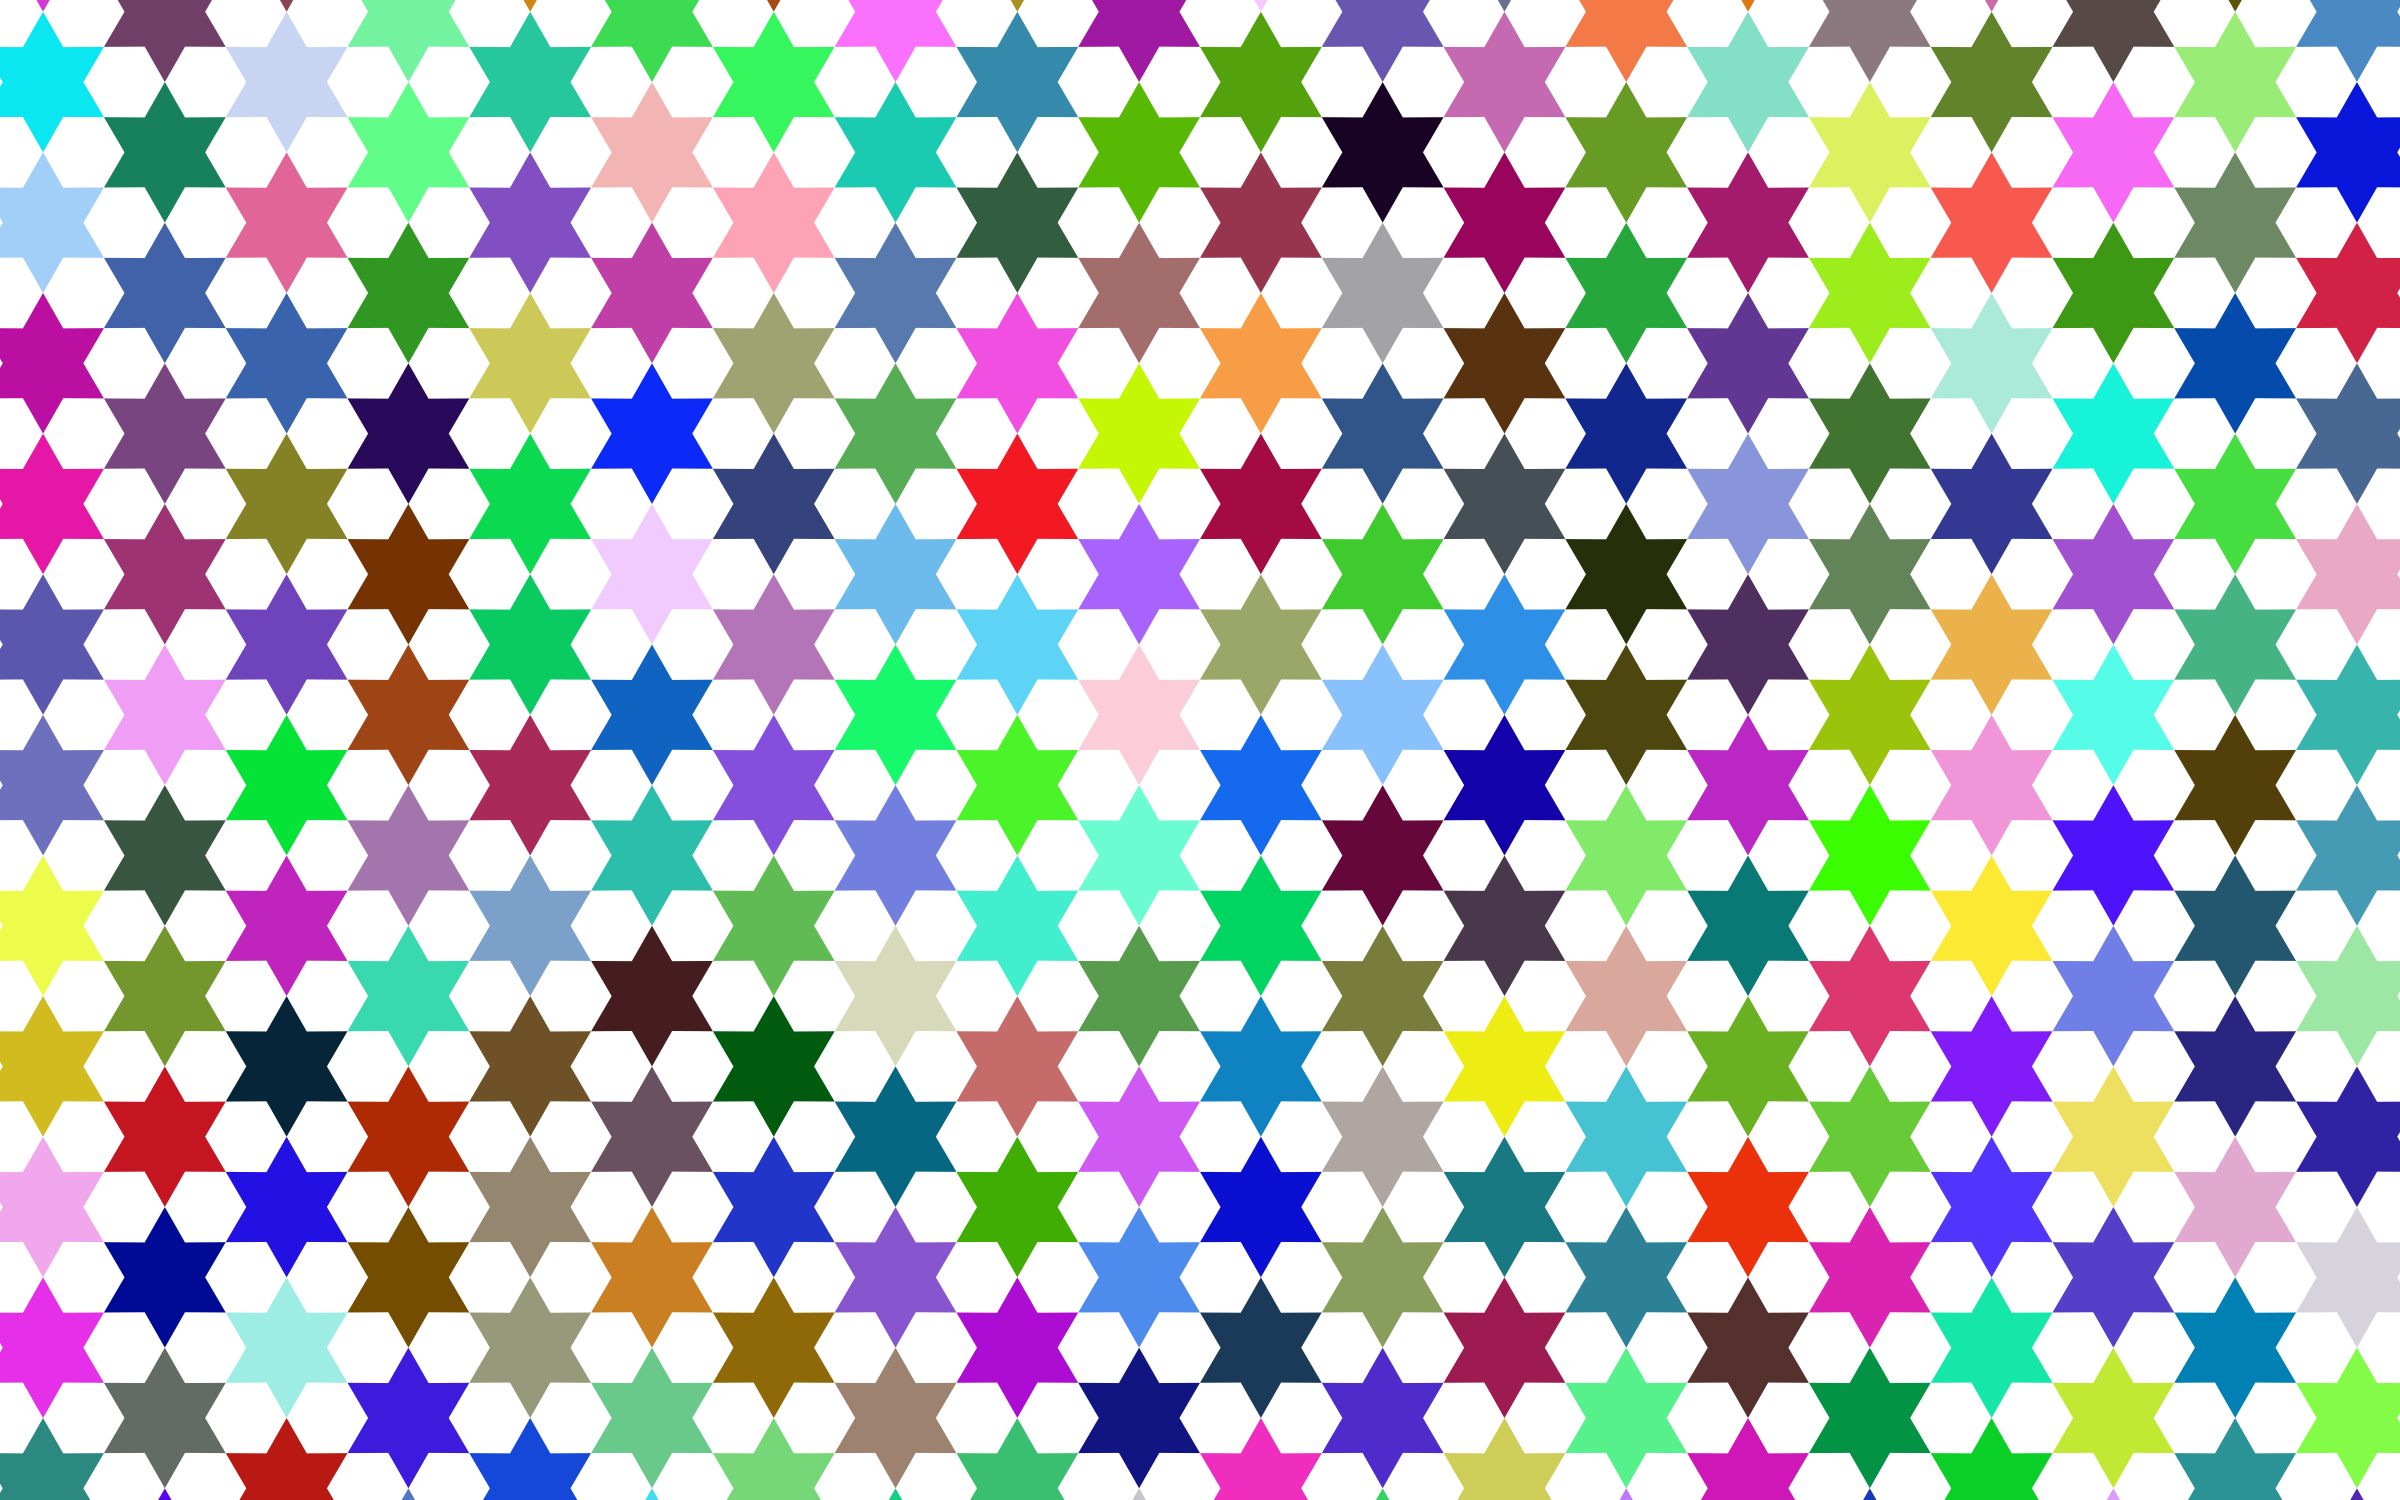 Abstract Stars Geometric Pattern 2 Prismatic by GDJ